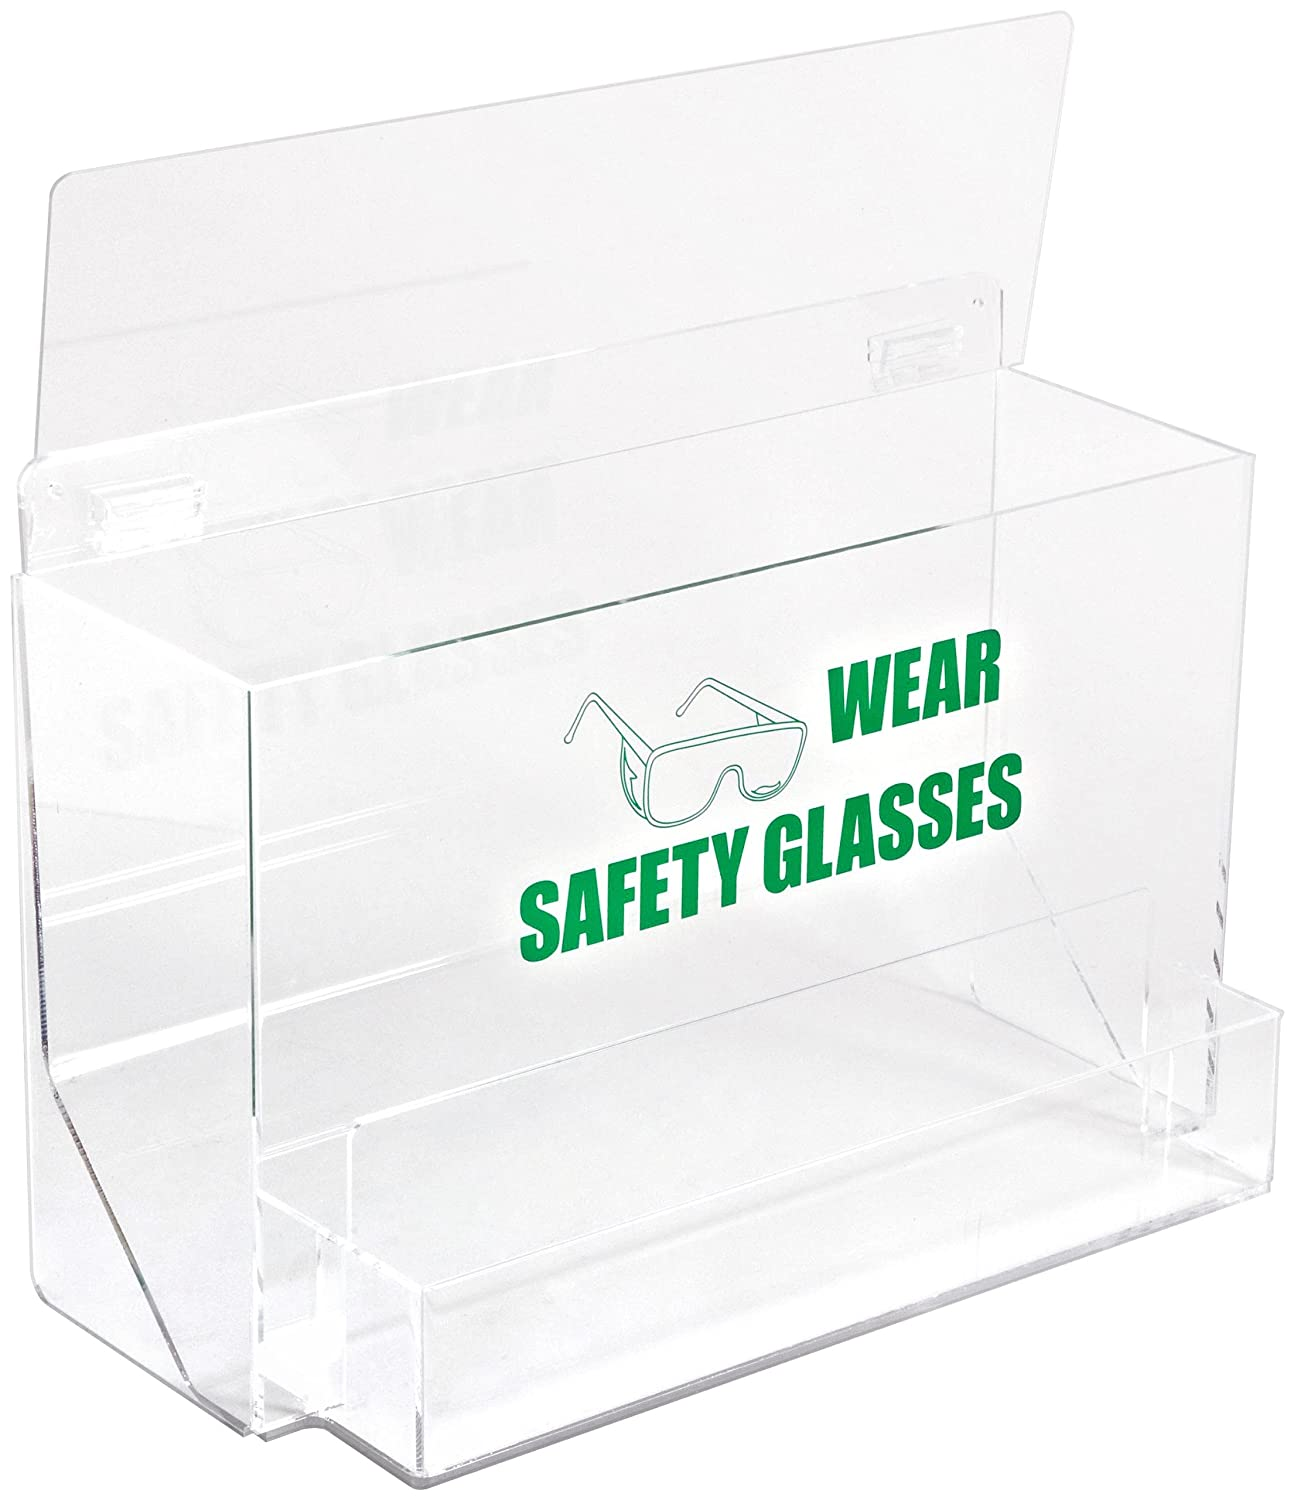 Legend Wear Safety Glasses Tough Acrylic Green On Clear Color Large Capacity Eye Protection Dispenser 18 Width 9-1//4 Depth 18 Width 9-1//4 Depth Legend Wear Safety Glasses With Picto With Picto Brady PD701E 12-1//4 Height